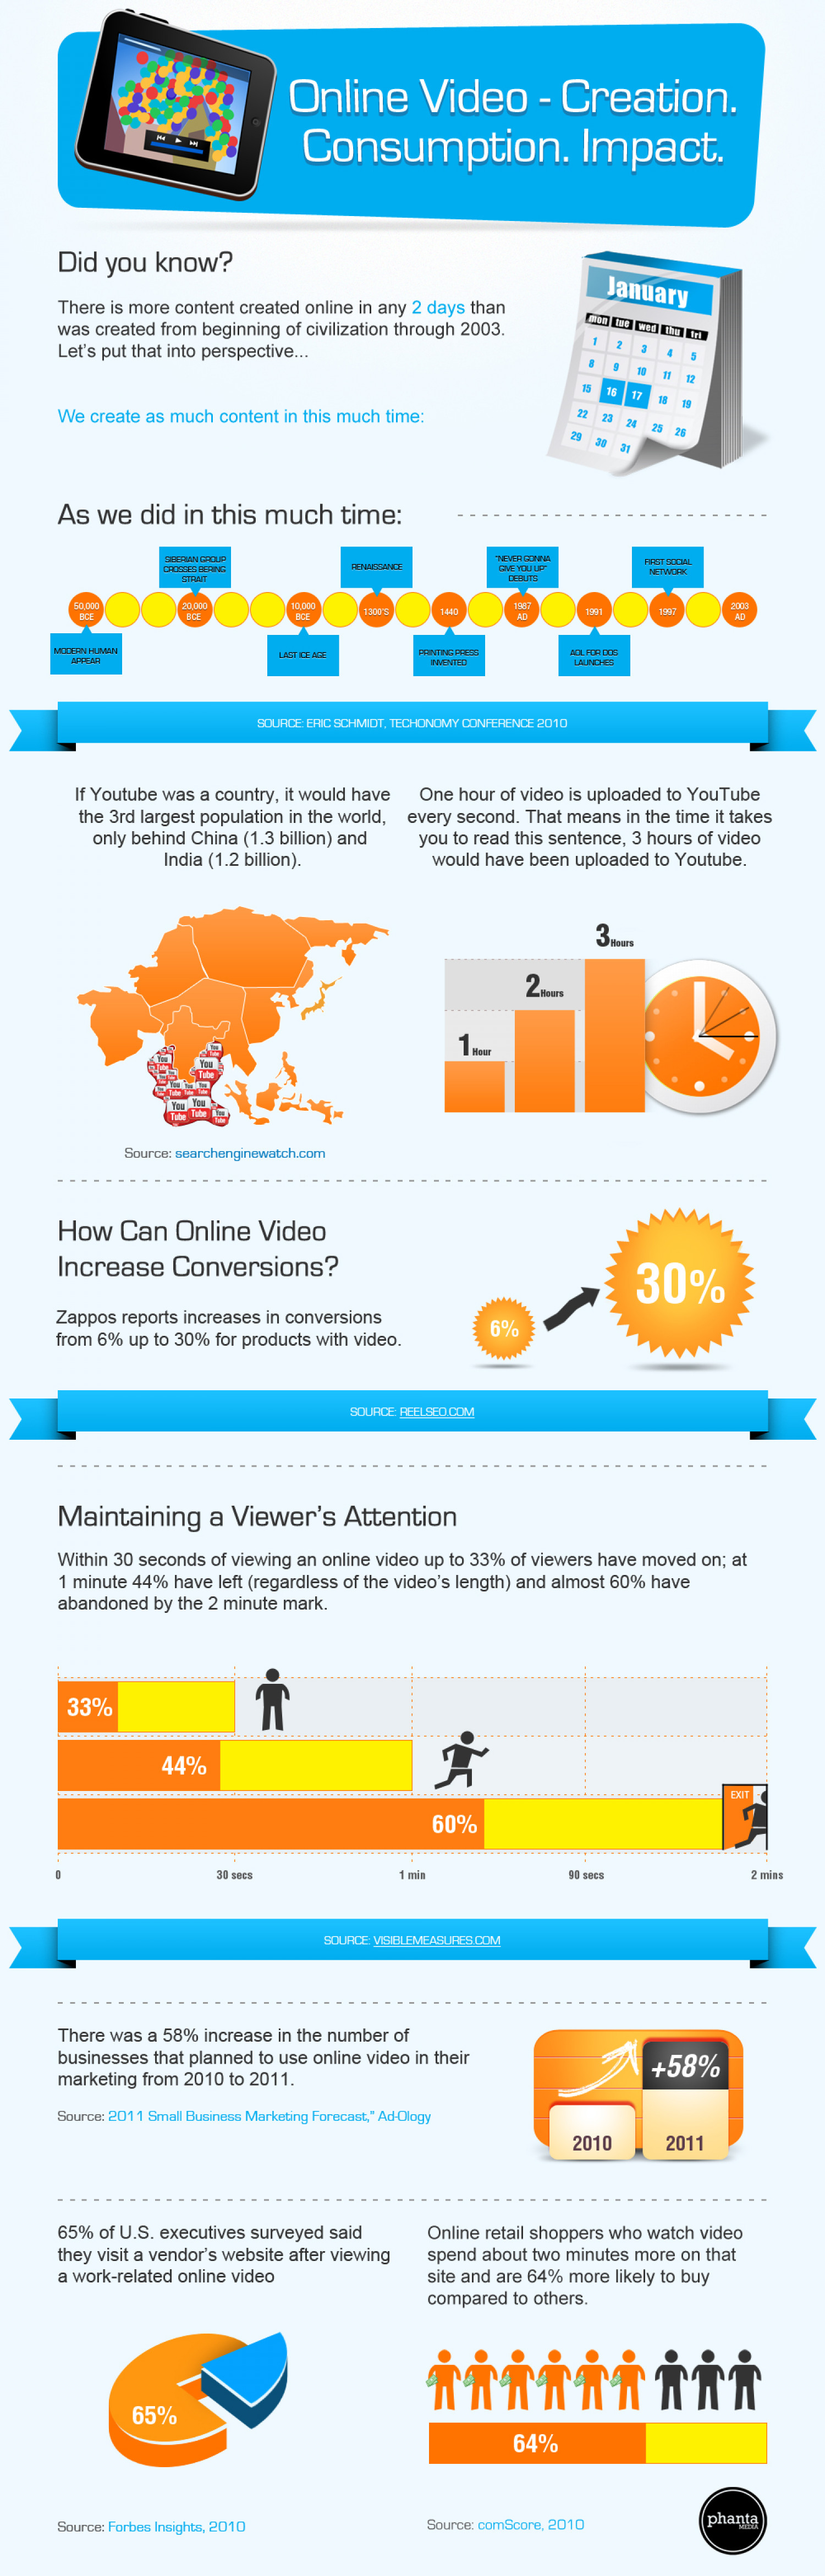 Online Video - Creation Consumption Impact Infographic